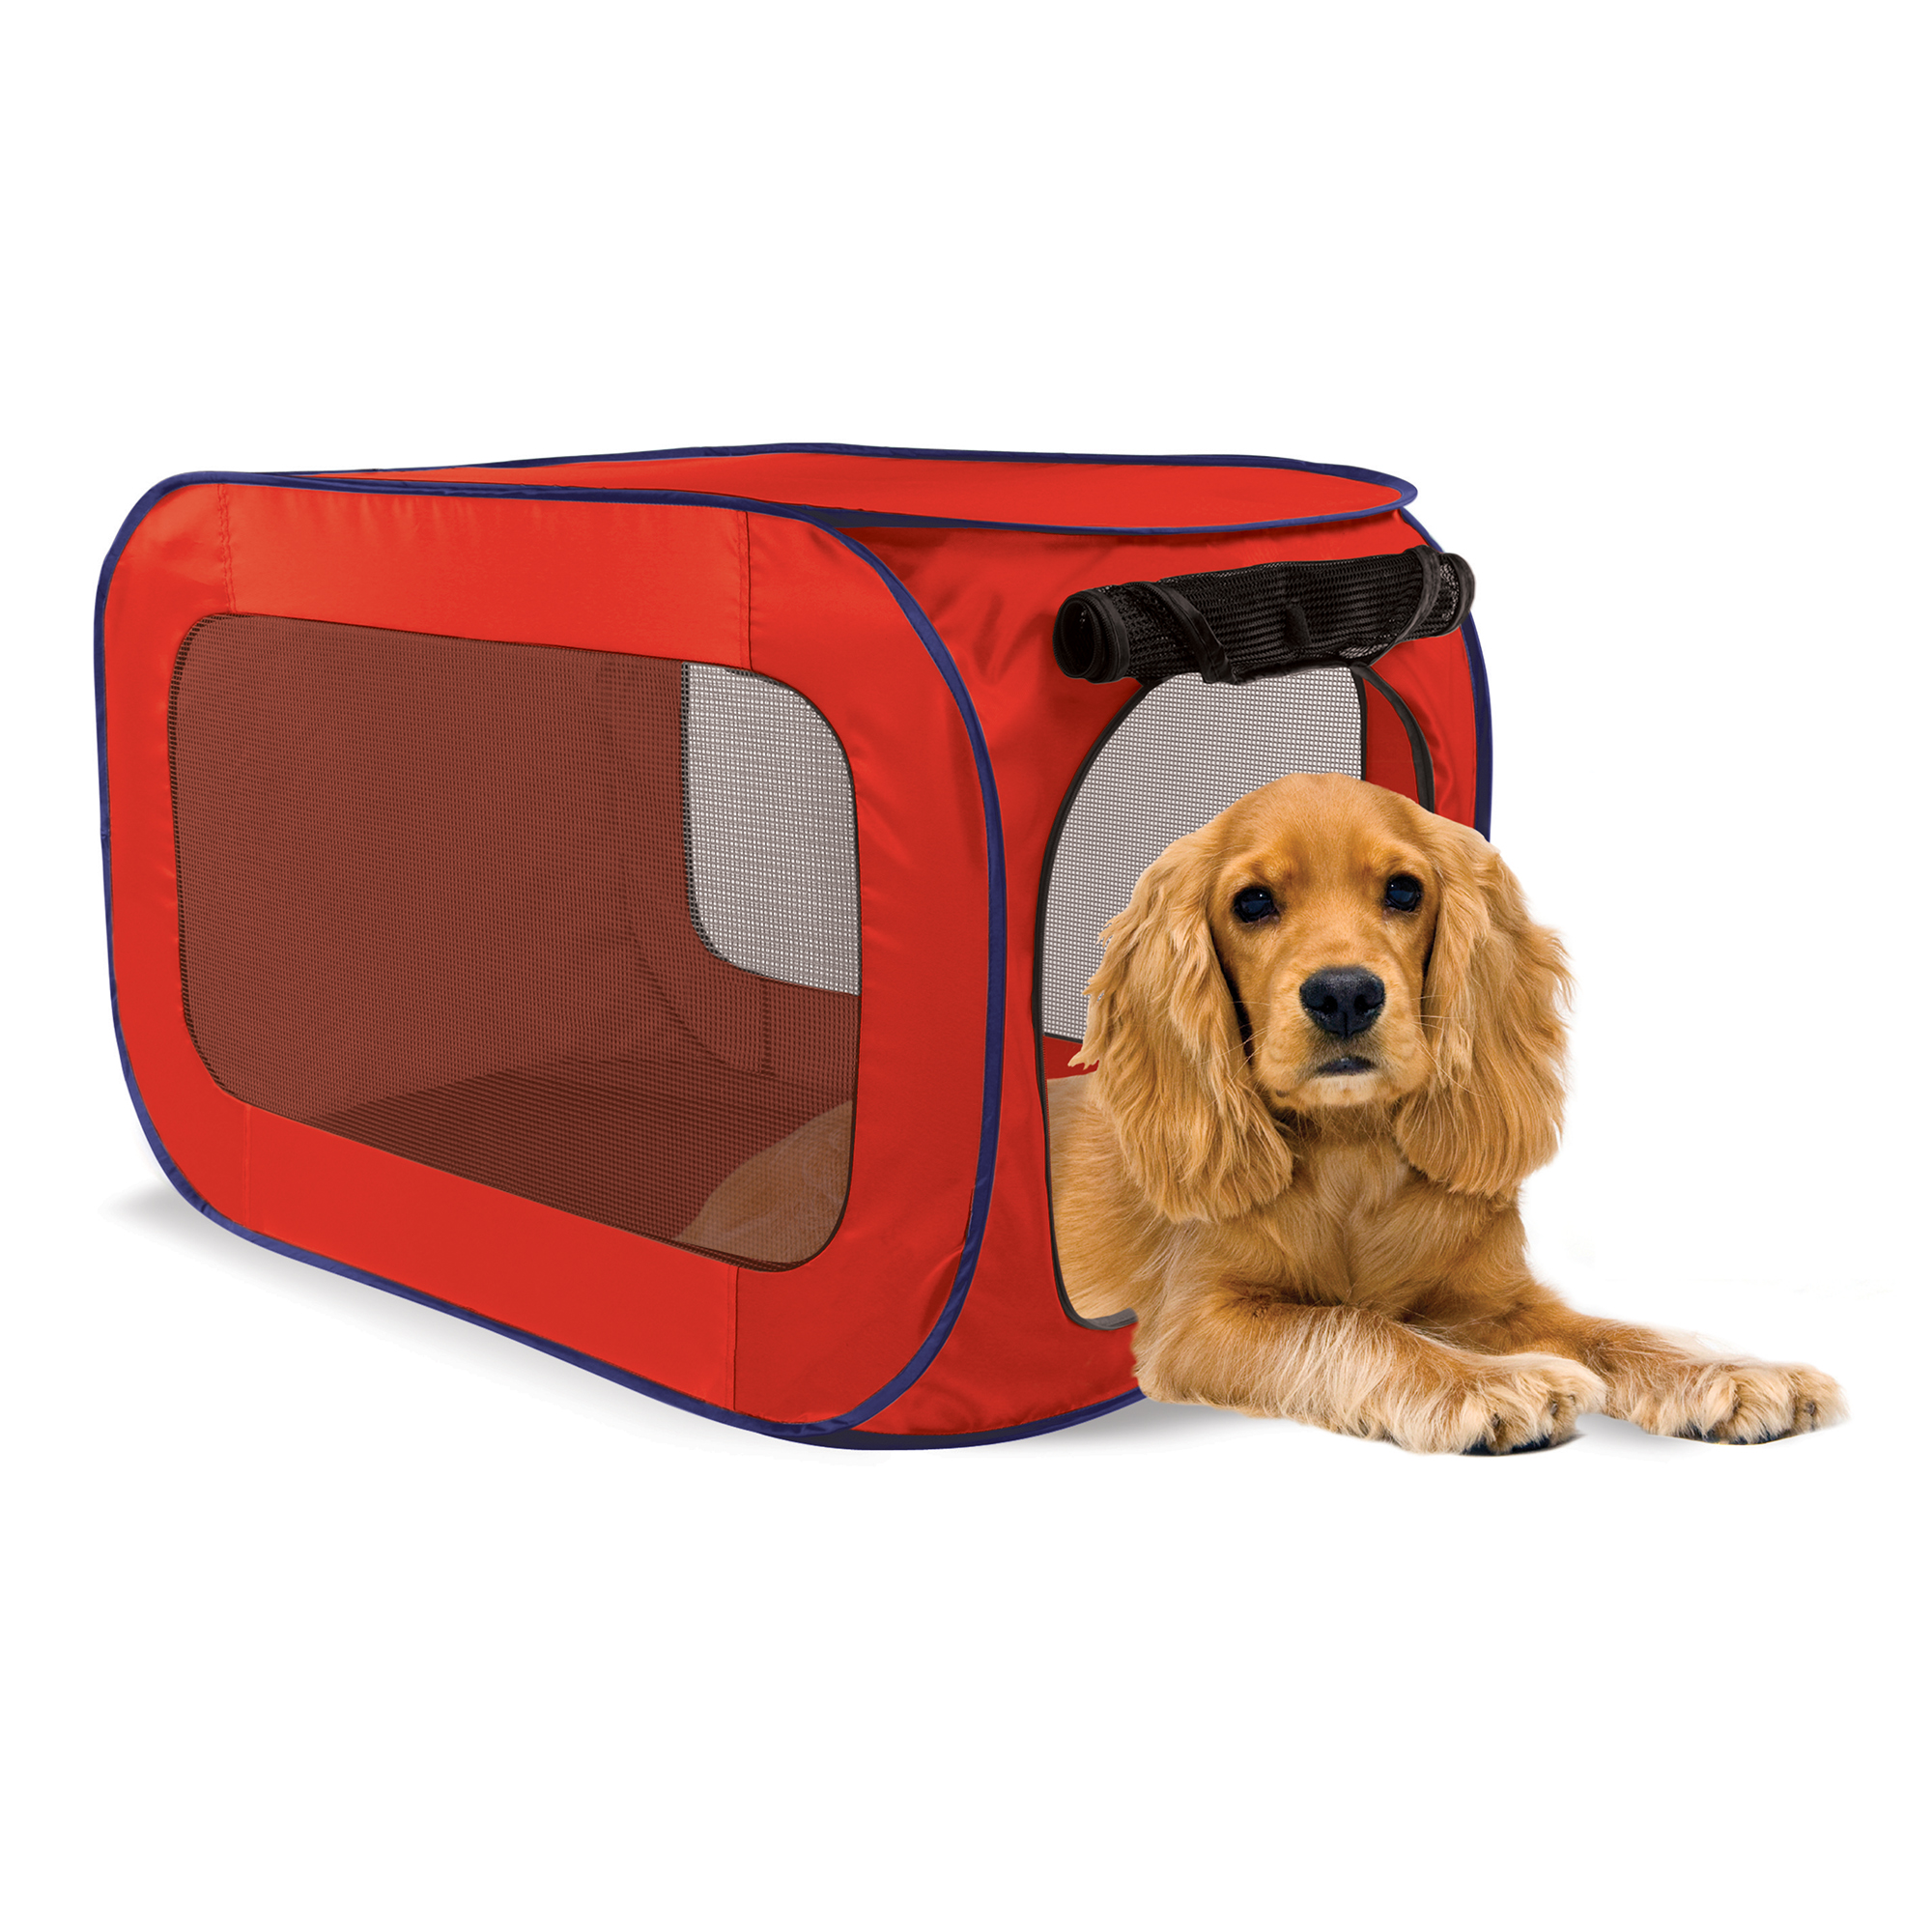 SportPet Pop-Open Kennel, Travel Dog Crate , Medium Size ( For Kennel Trained Pet Only )